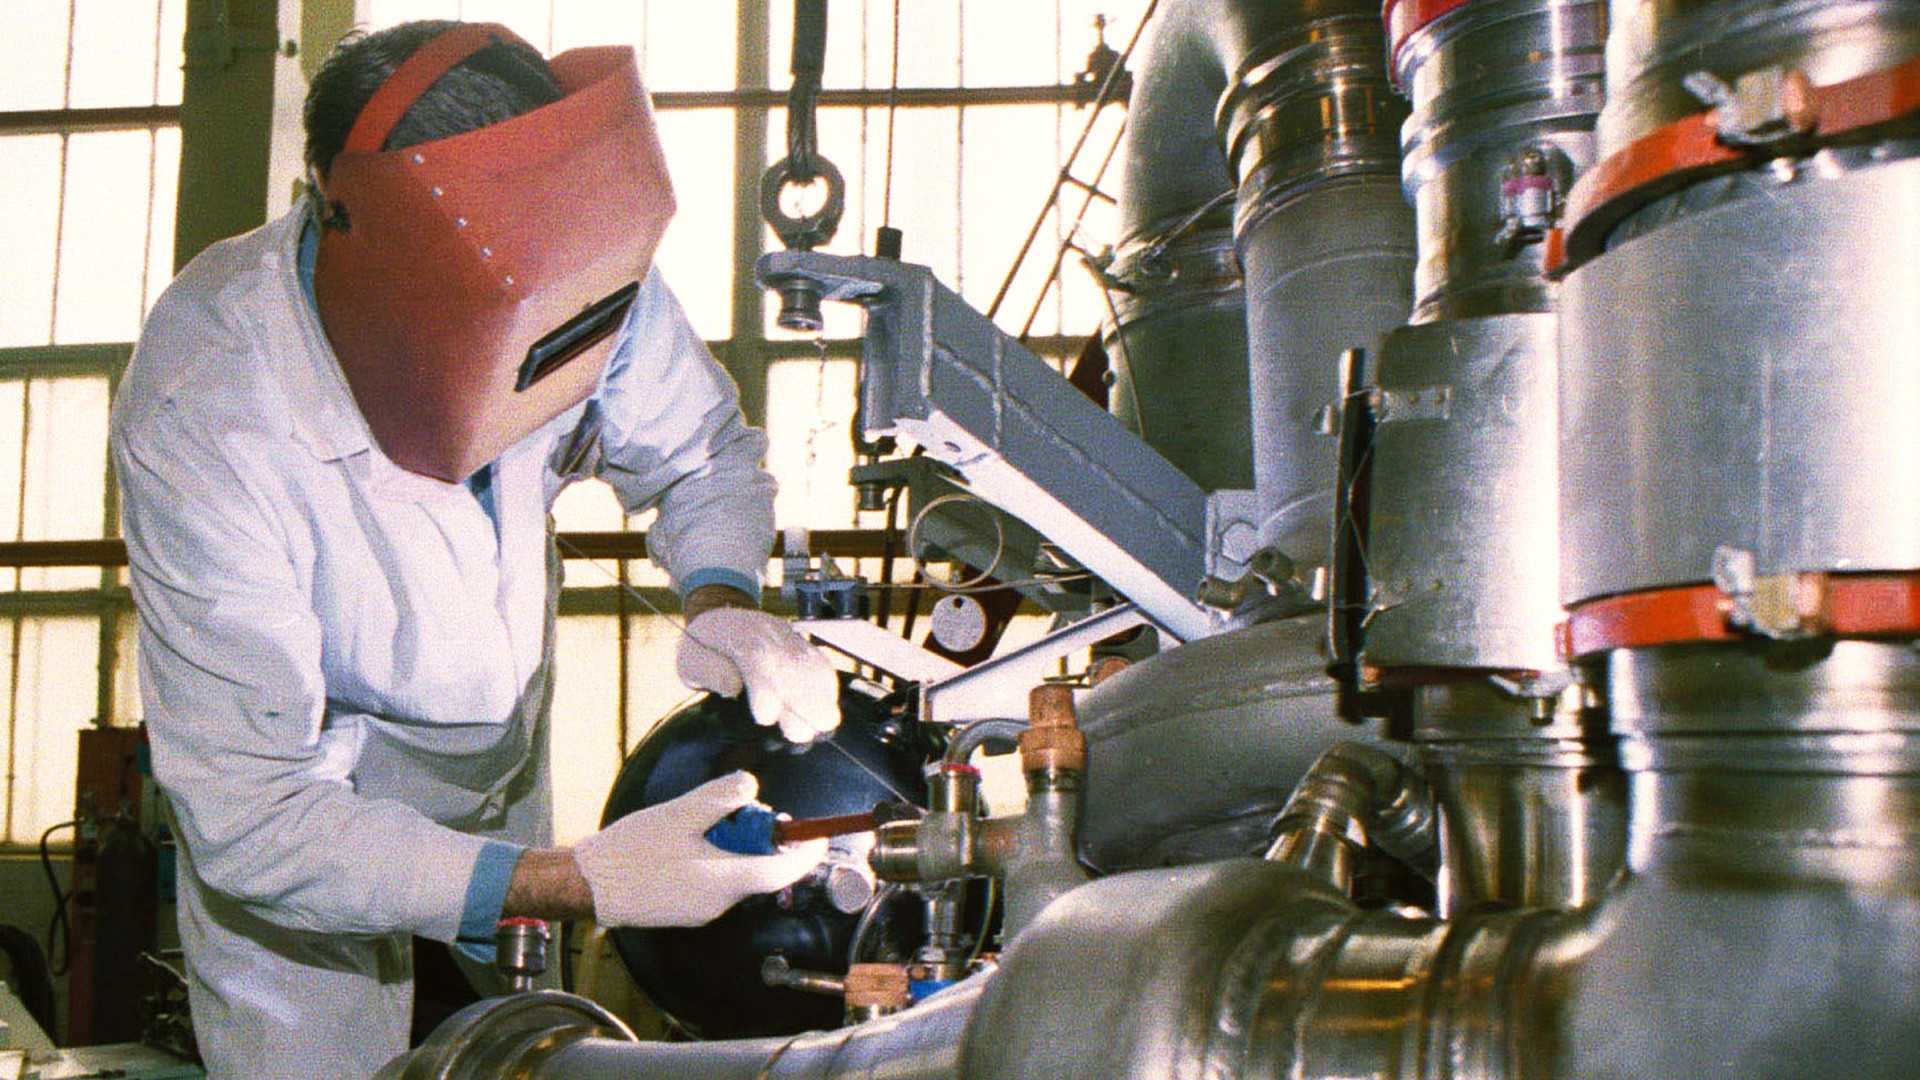 Worker of The Voronezh Mechanical Plant